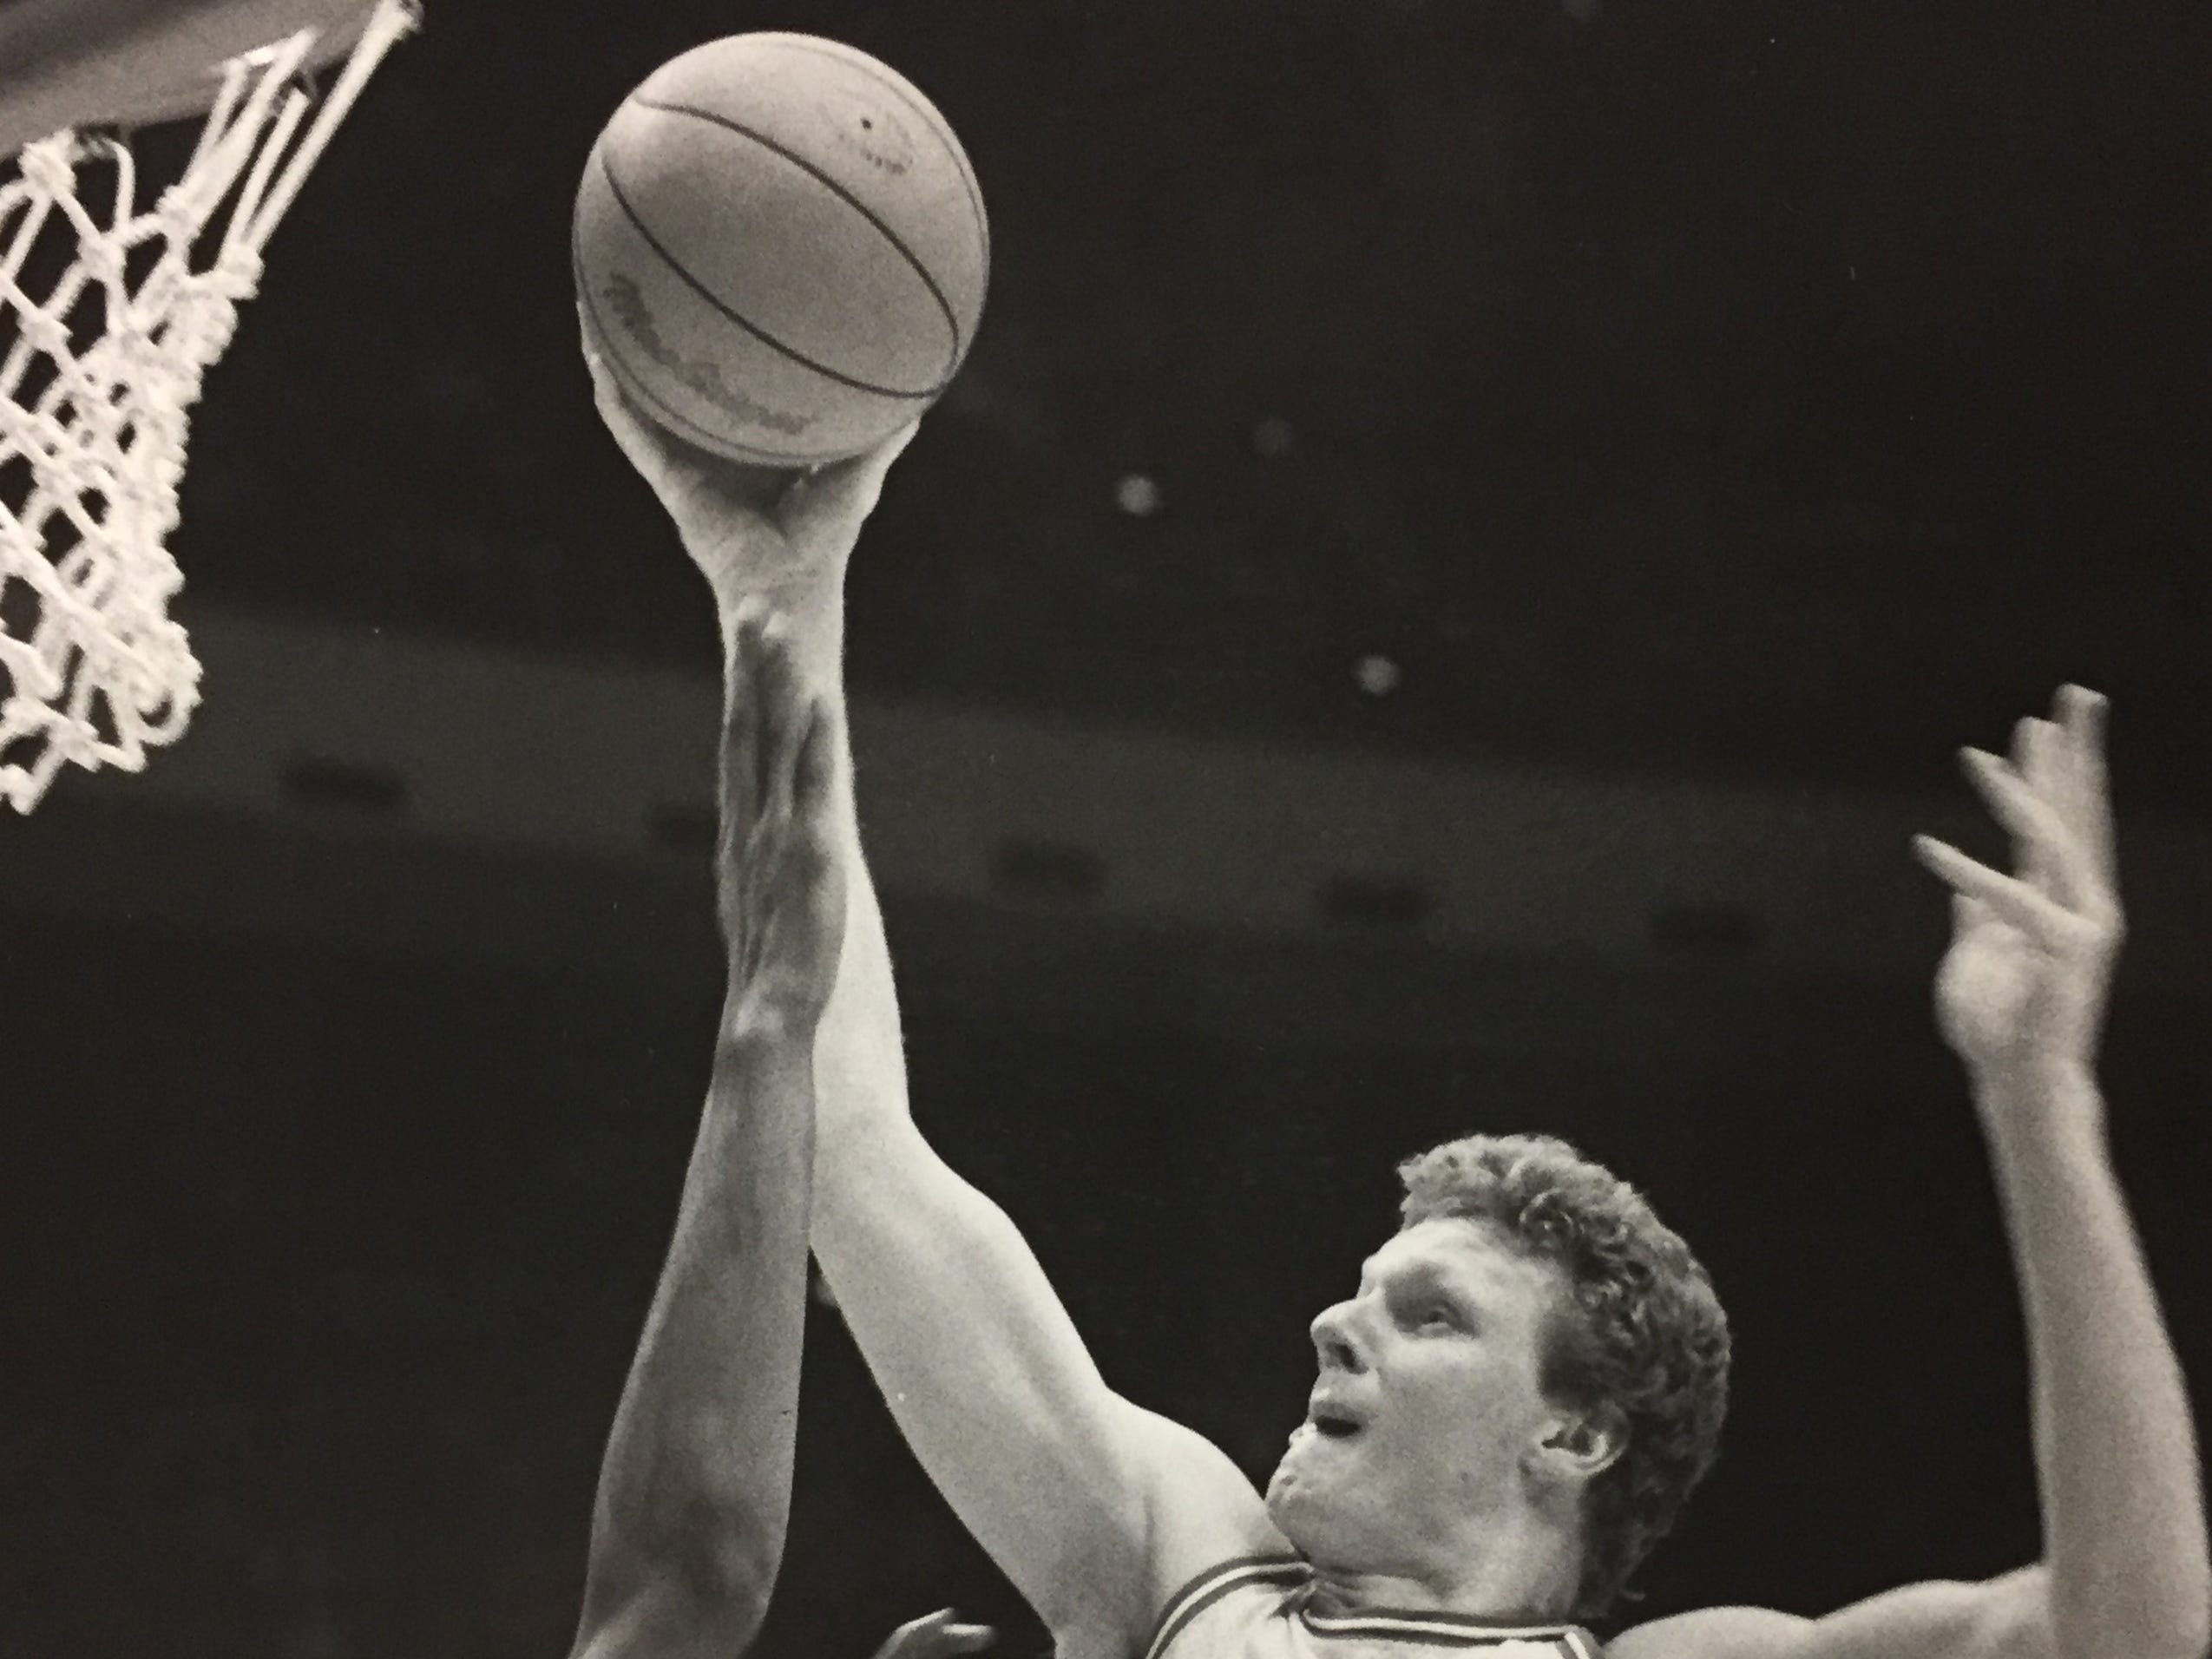 Uwe Blab puts up a shot over Miami of Ohio's Ron Harper on Nov. 26, 1983.